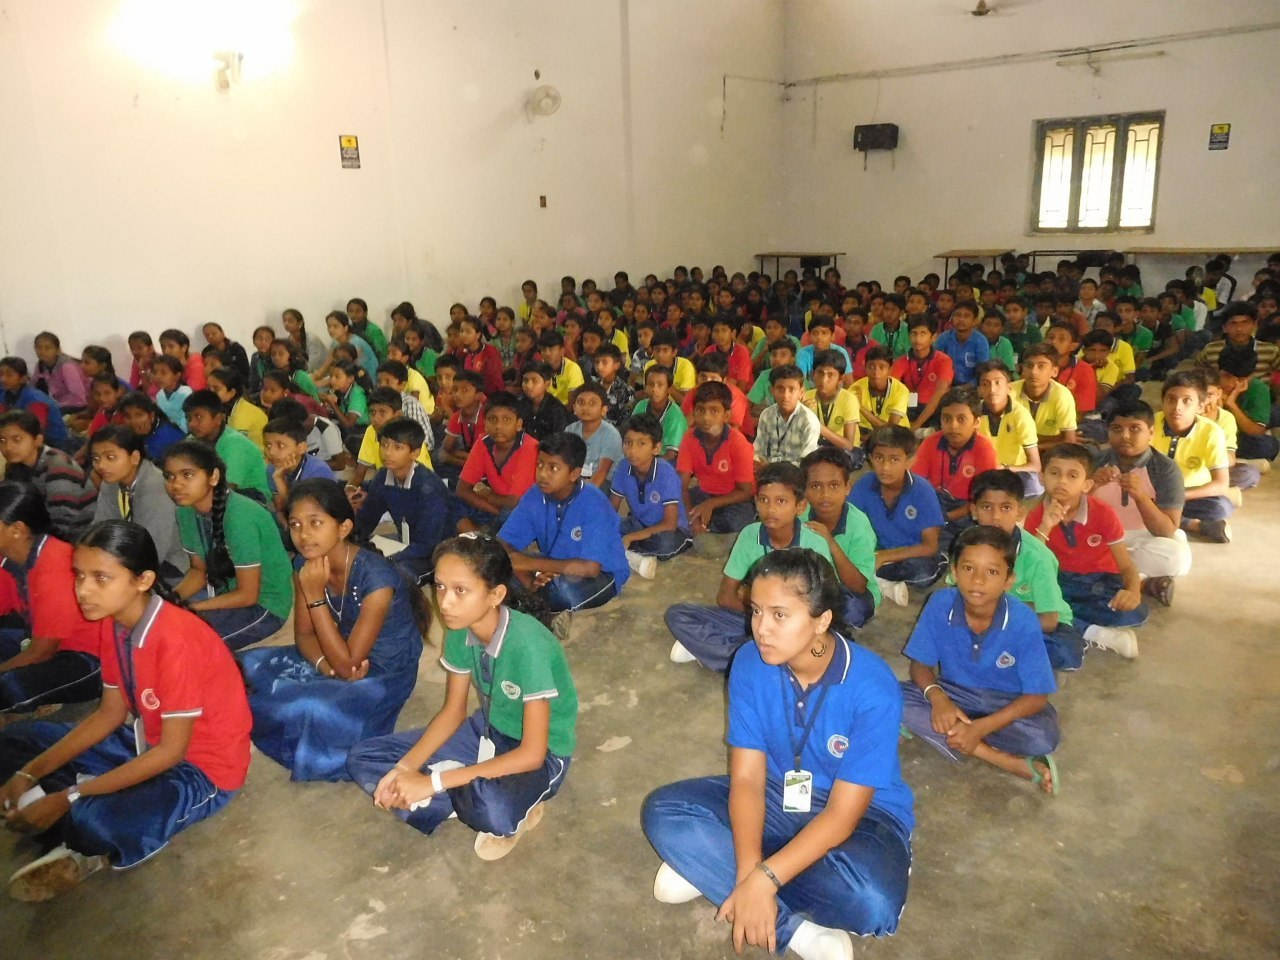 The inspirational event was conducted for the benefit of students to help them face challenges in life